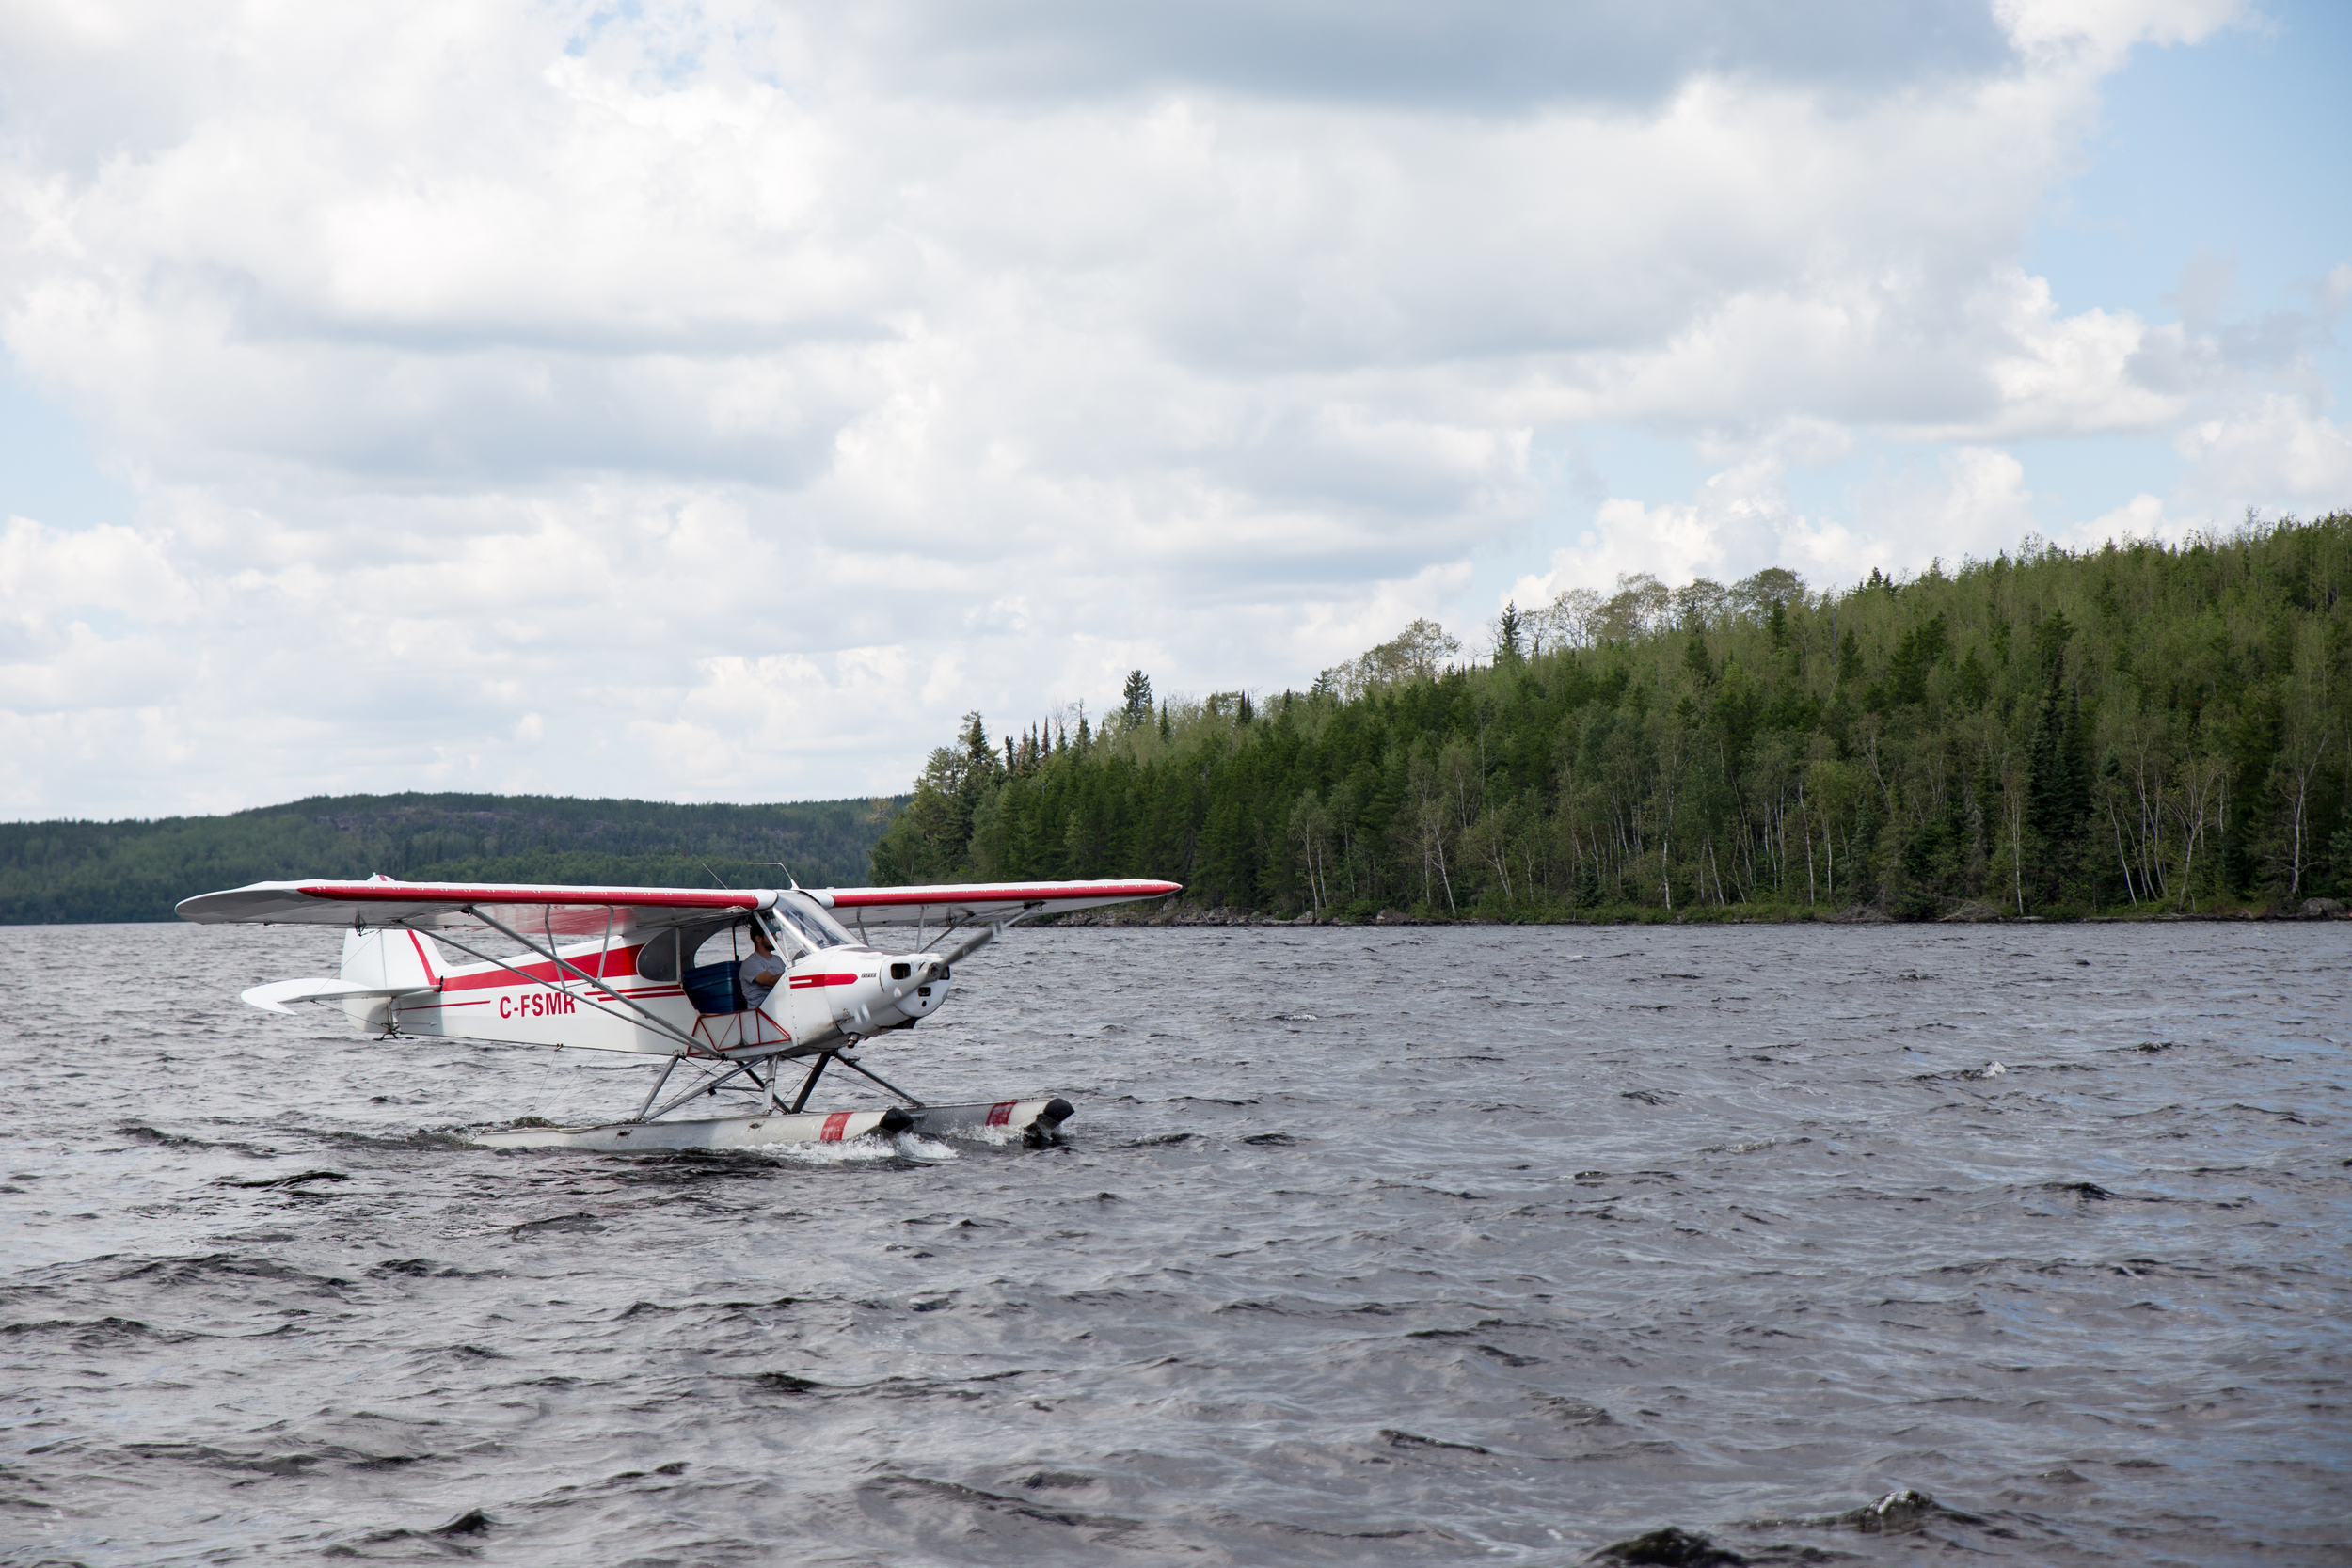 How the lodge gets bait. The pilot lands his plane in a stream, catches minnows and then delivers them to the remote lodges by landing on their lakes.